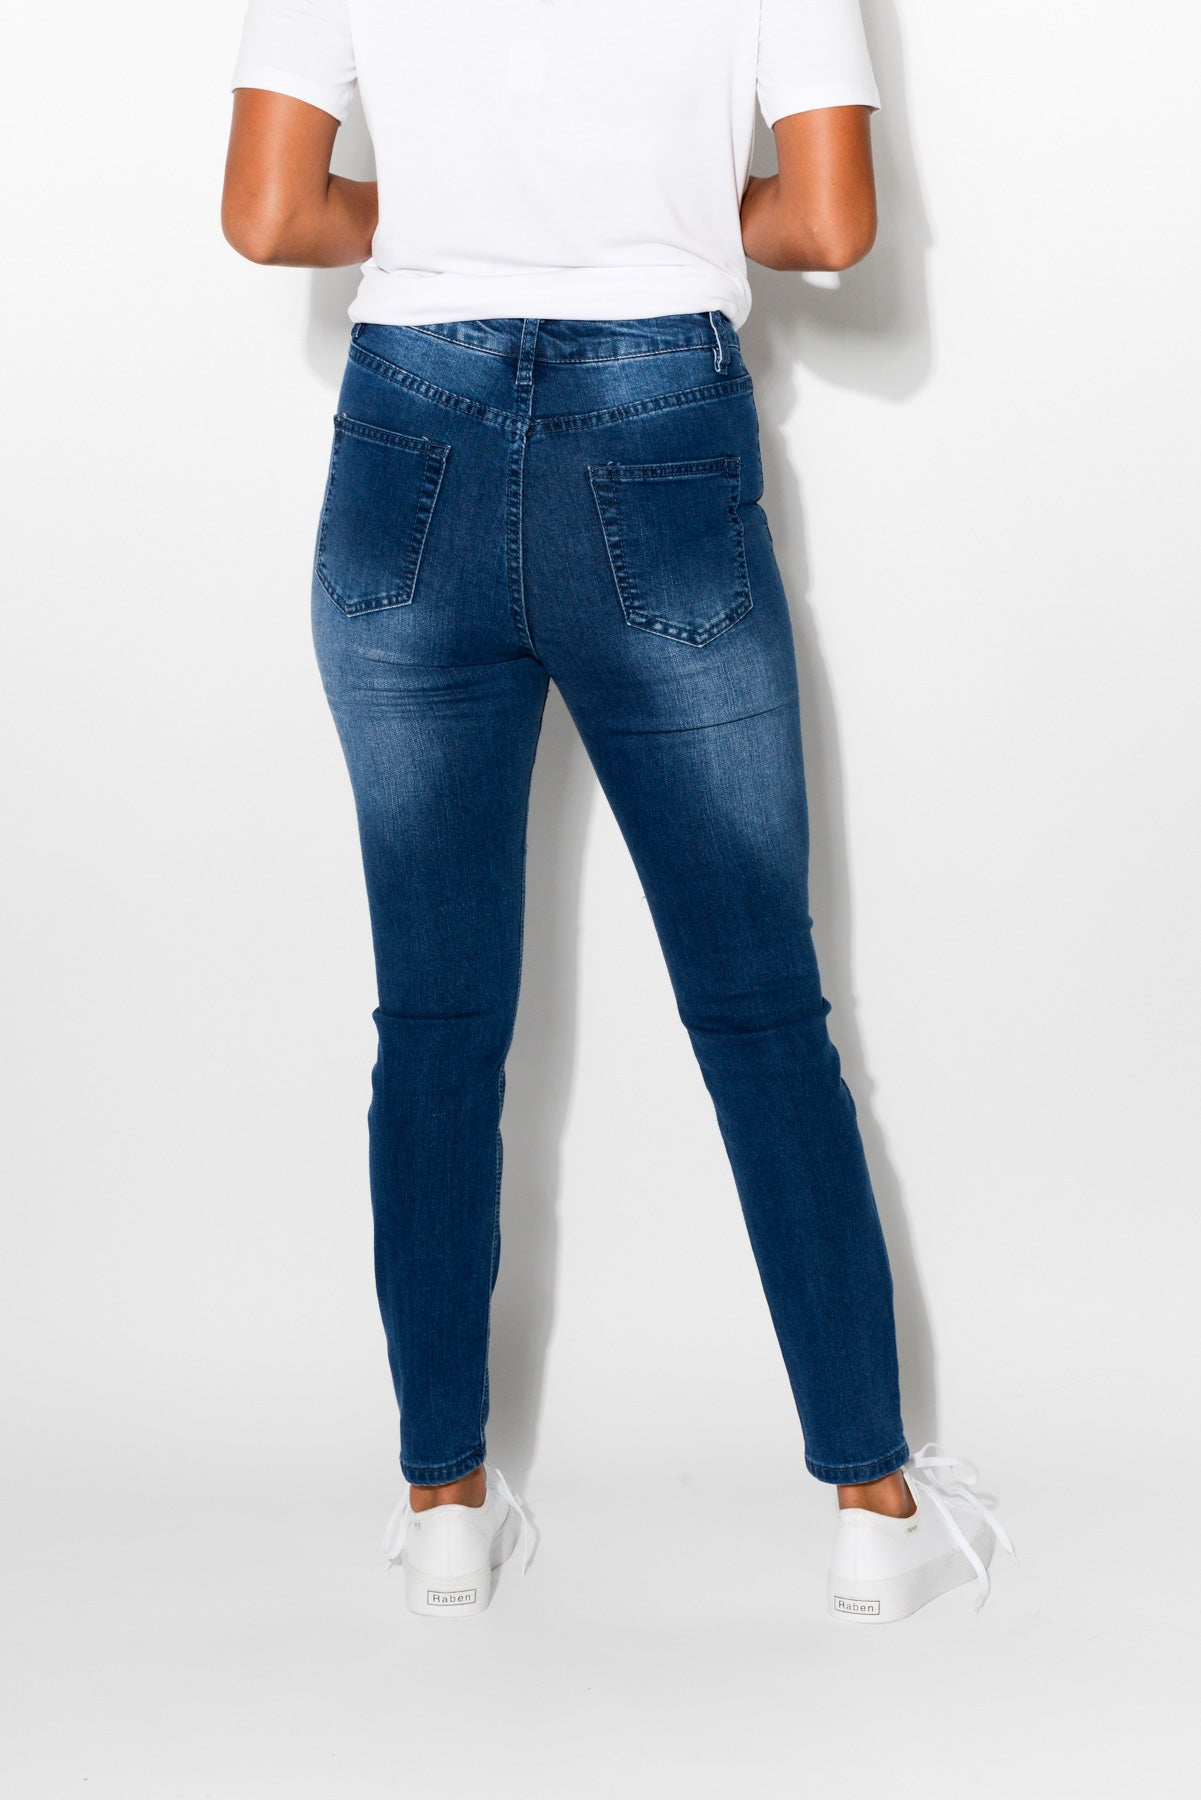 Jasmine Blue Denim Jean - Blue Bungalow